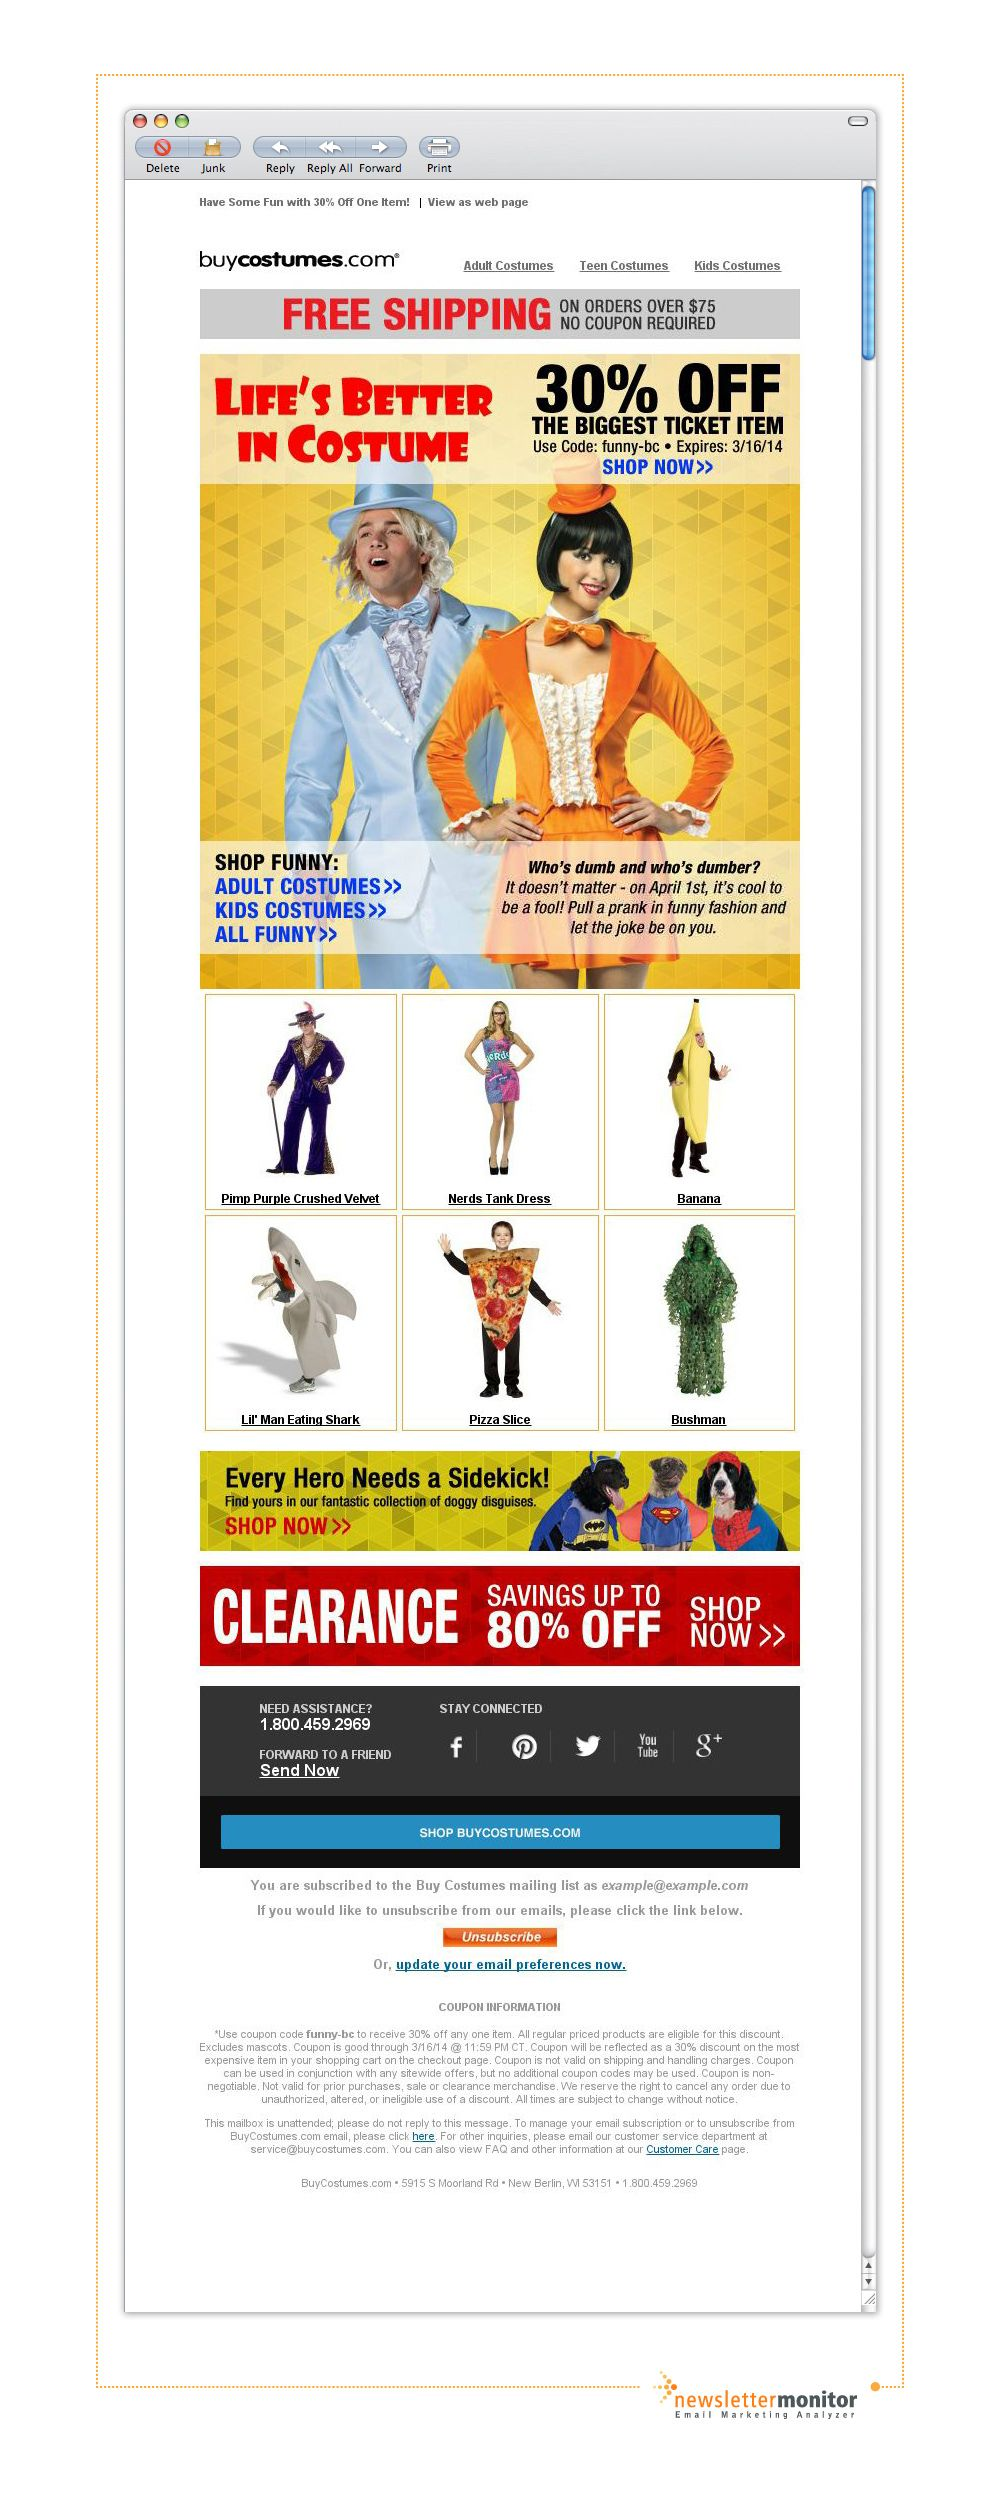 Brand: BuyCostumes   Subject: It's Not a Prank: Save 30%!